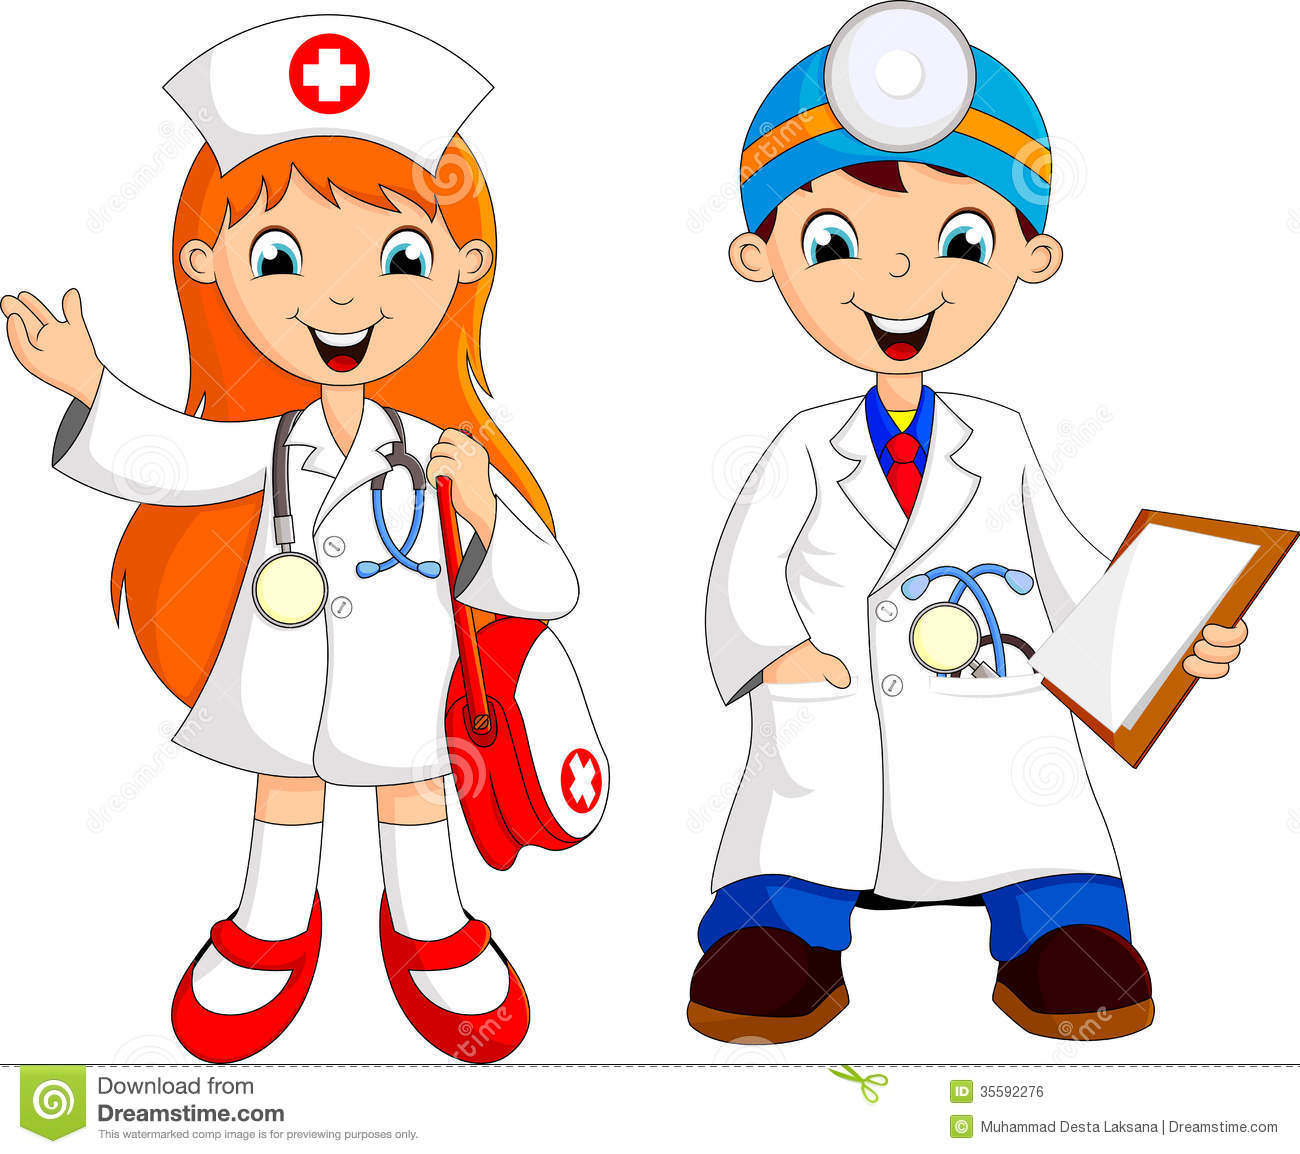 Clipart Doctor & Doctor Clip Art Images.